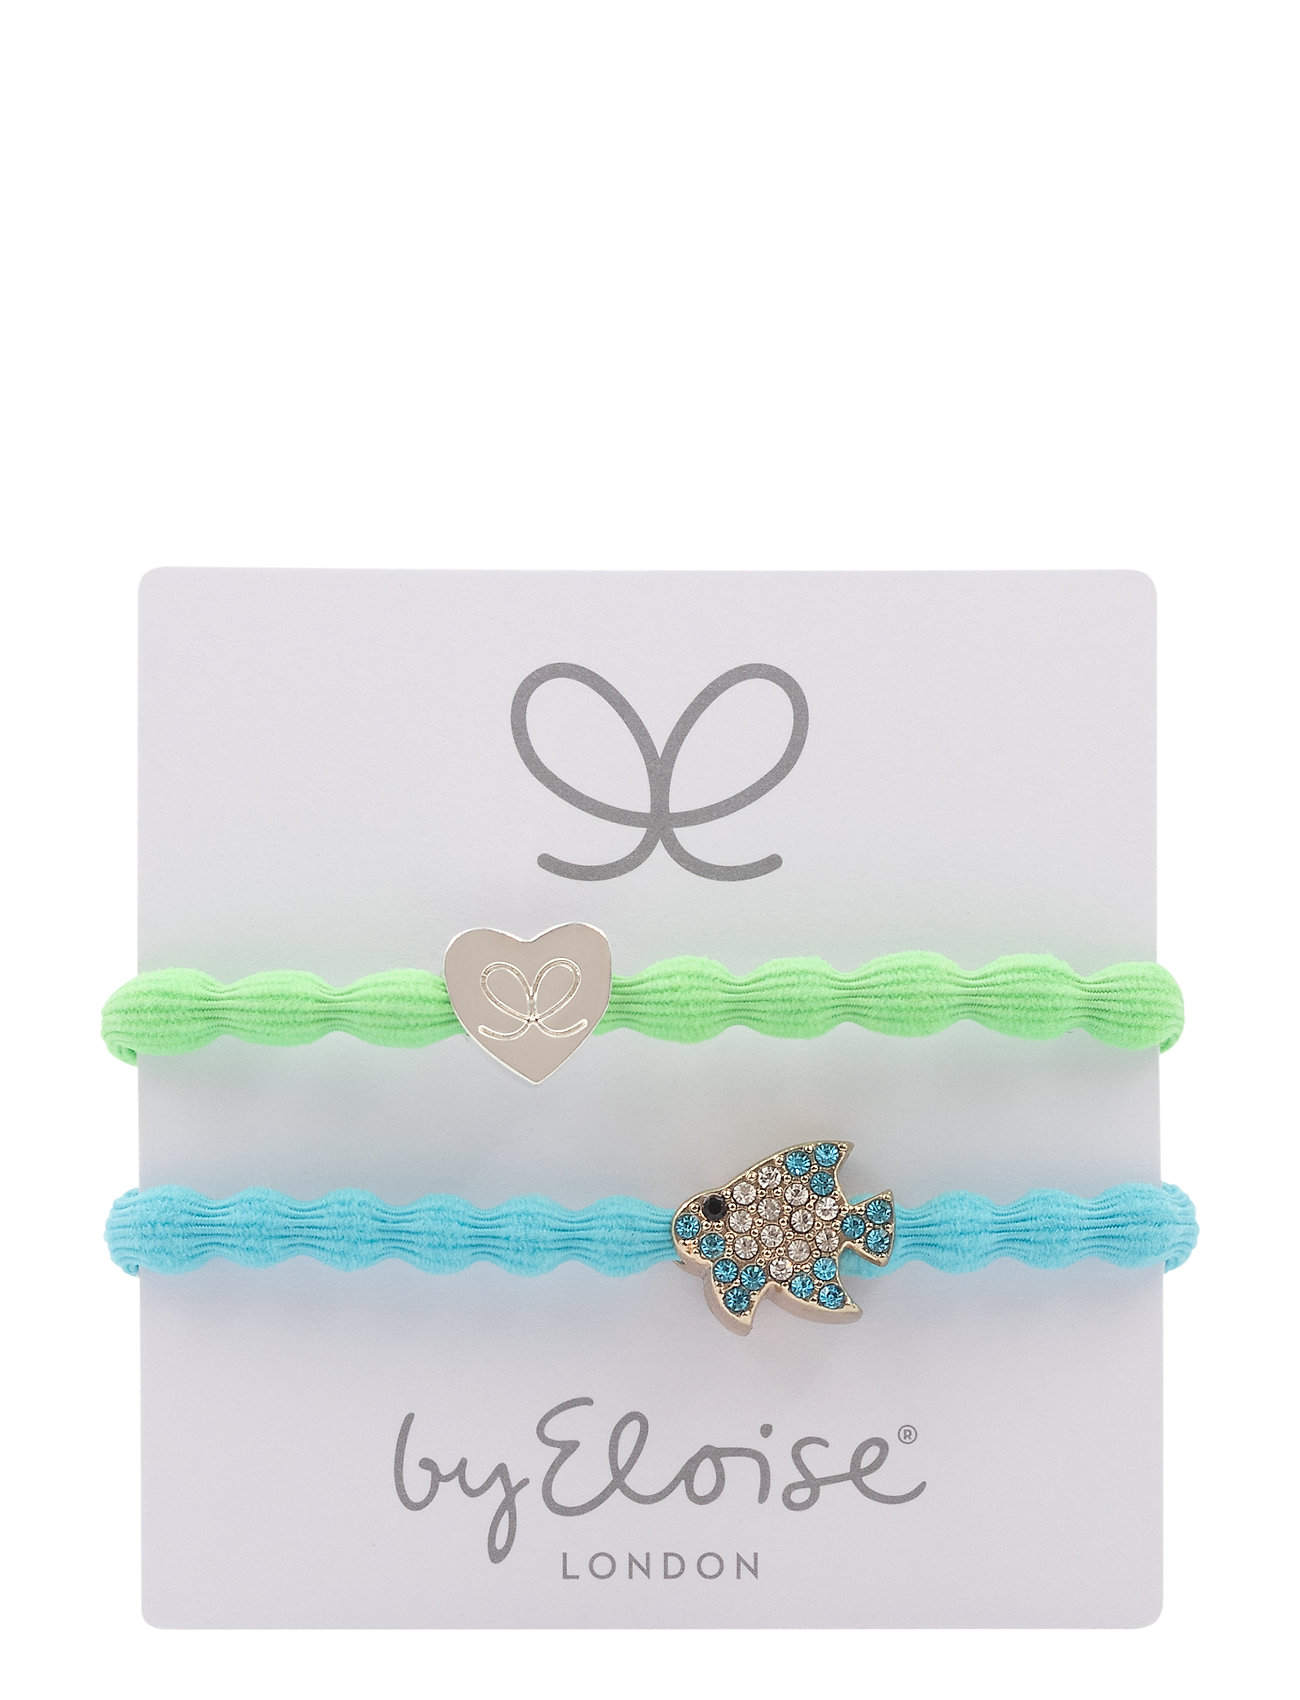 Silver Heart/Lime Green And Bling Tropical Fish/Neon Blue - ByEloise